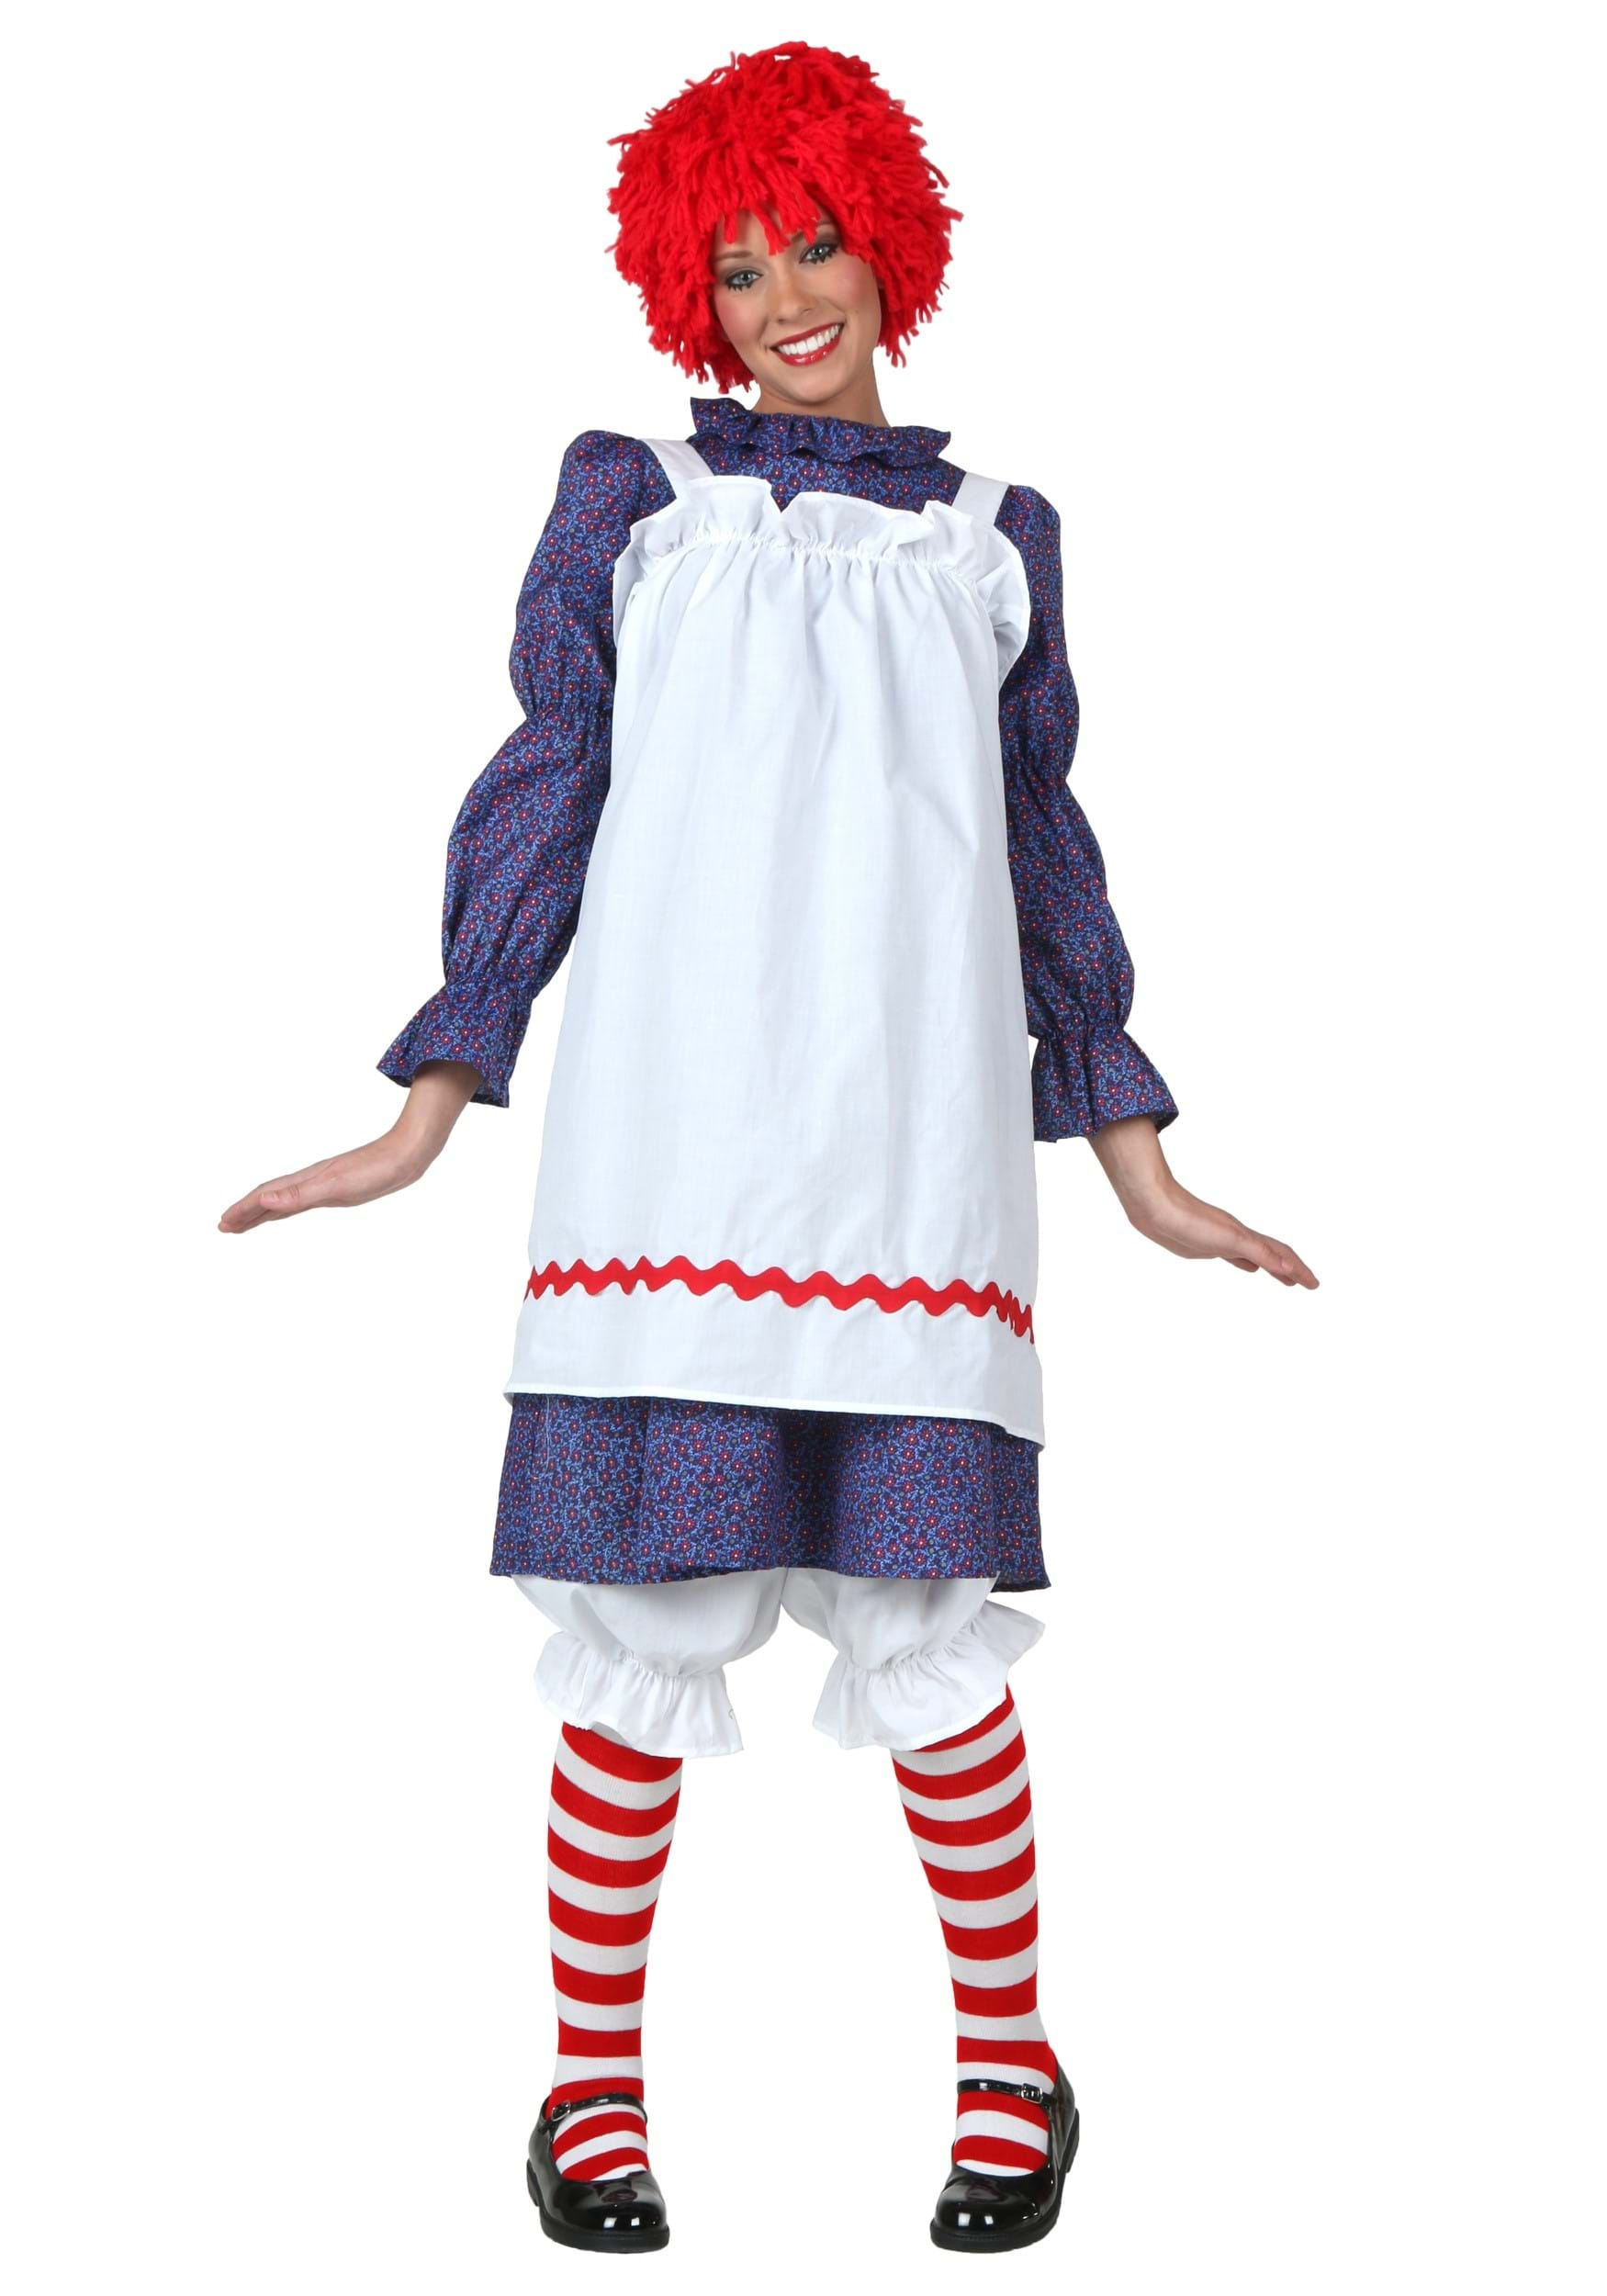 Adult Rag Doll Costume